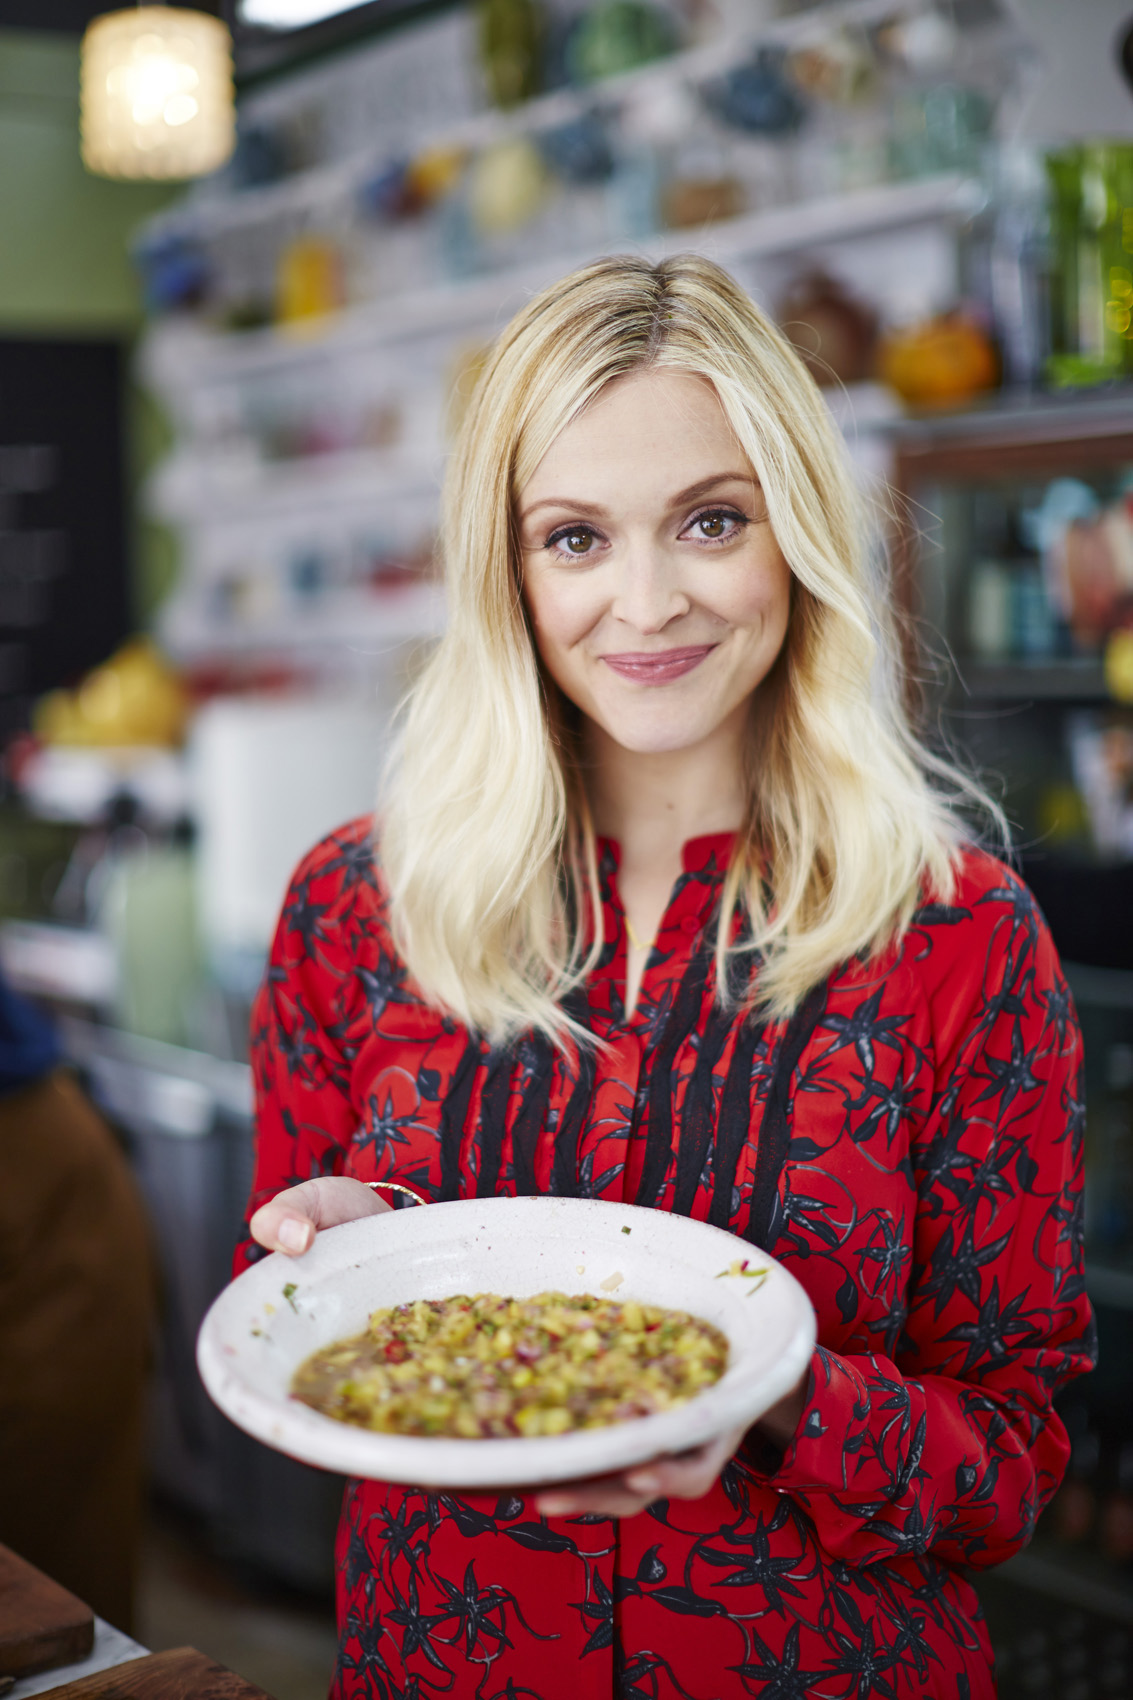 SteveRyan_Photographer_Portraits_People_FridayNightFeast_JamieOliver_FearneCotton_49